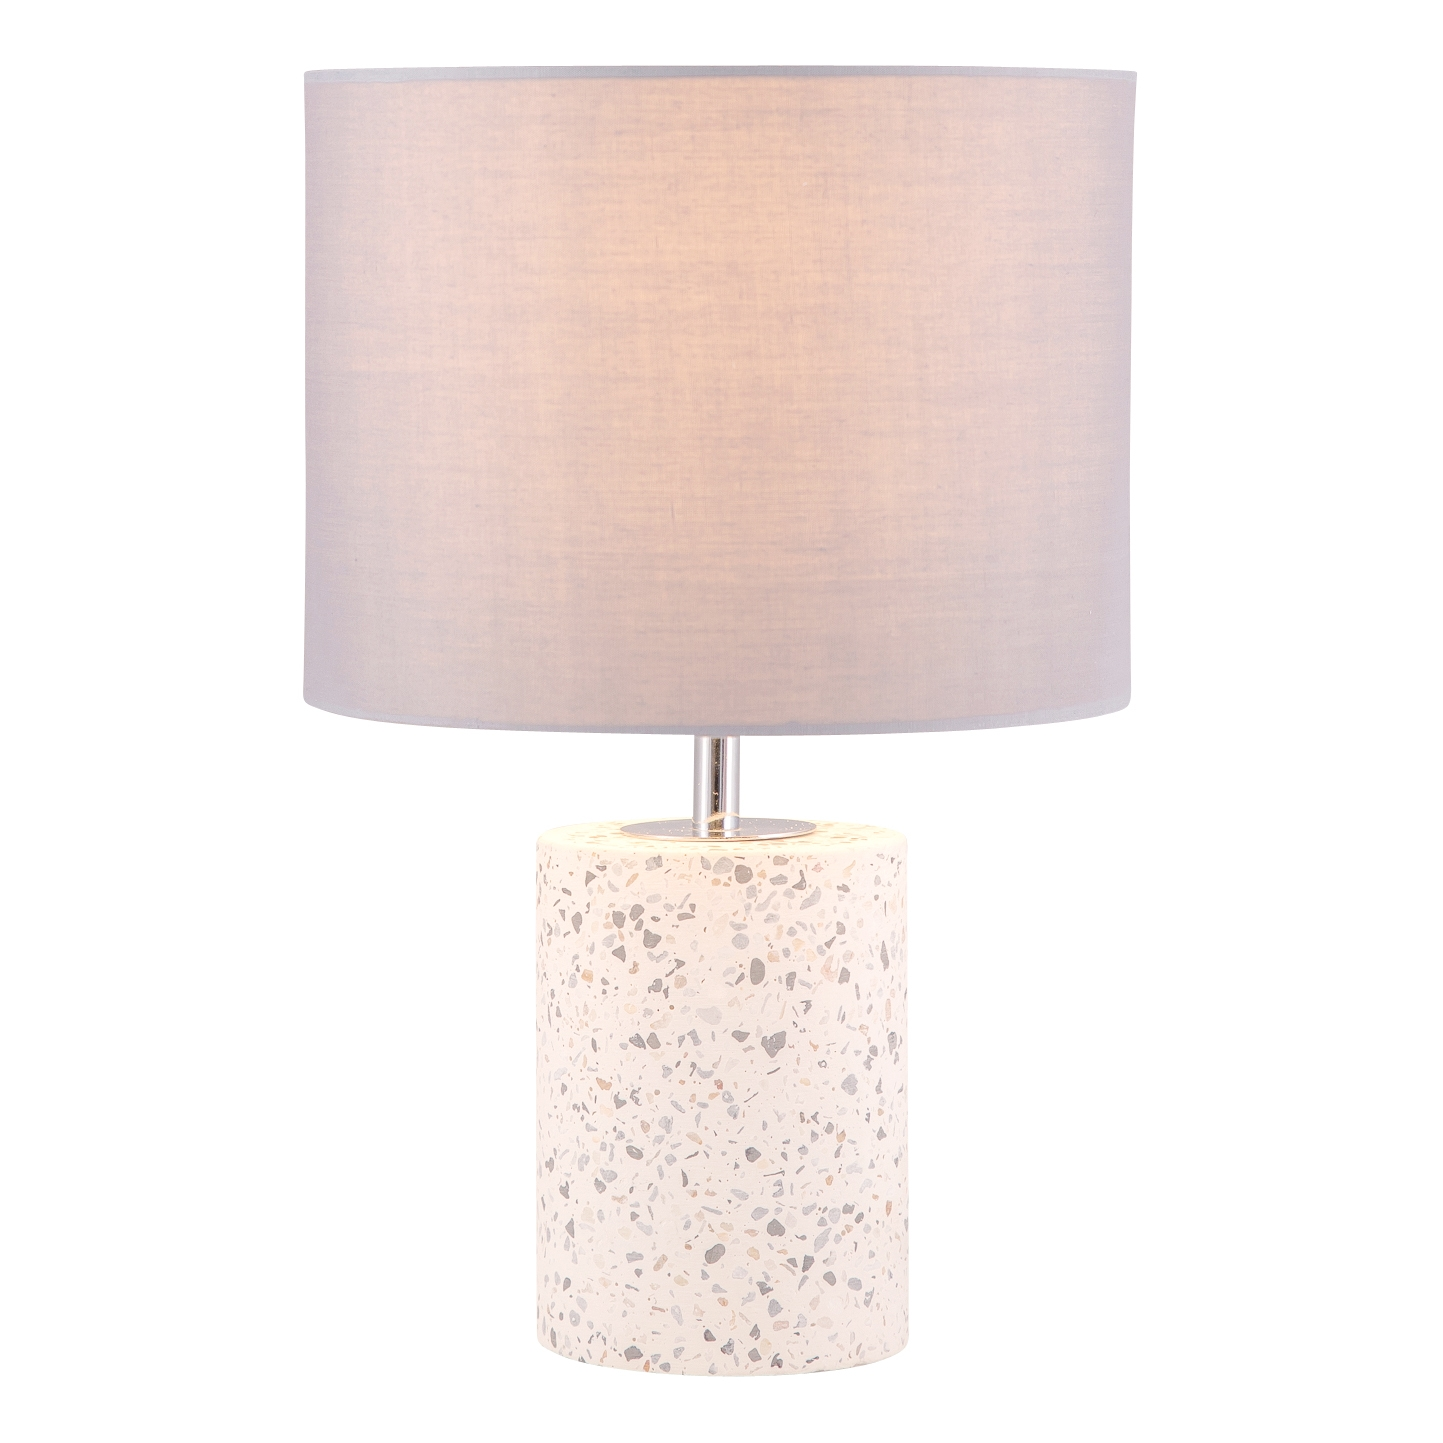 Details About Terrazzo White Concrete 32cm Bedside Light Table Lamp With Grey Fabric Shade